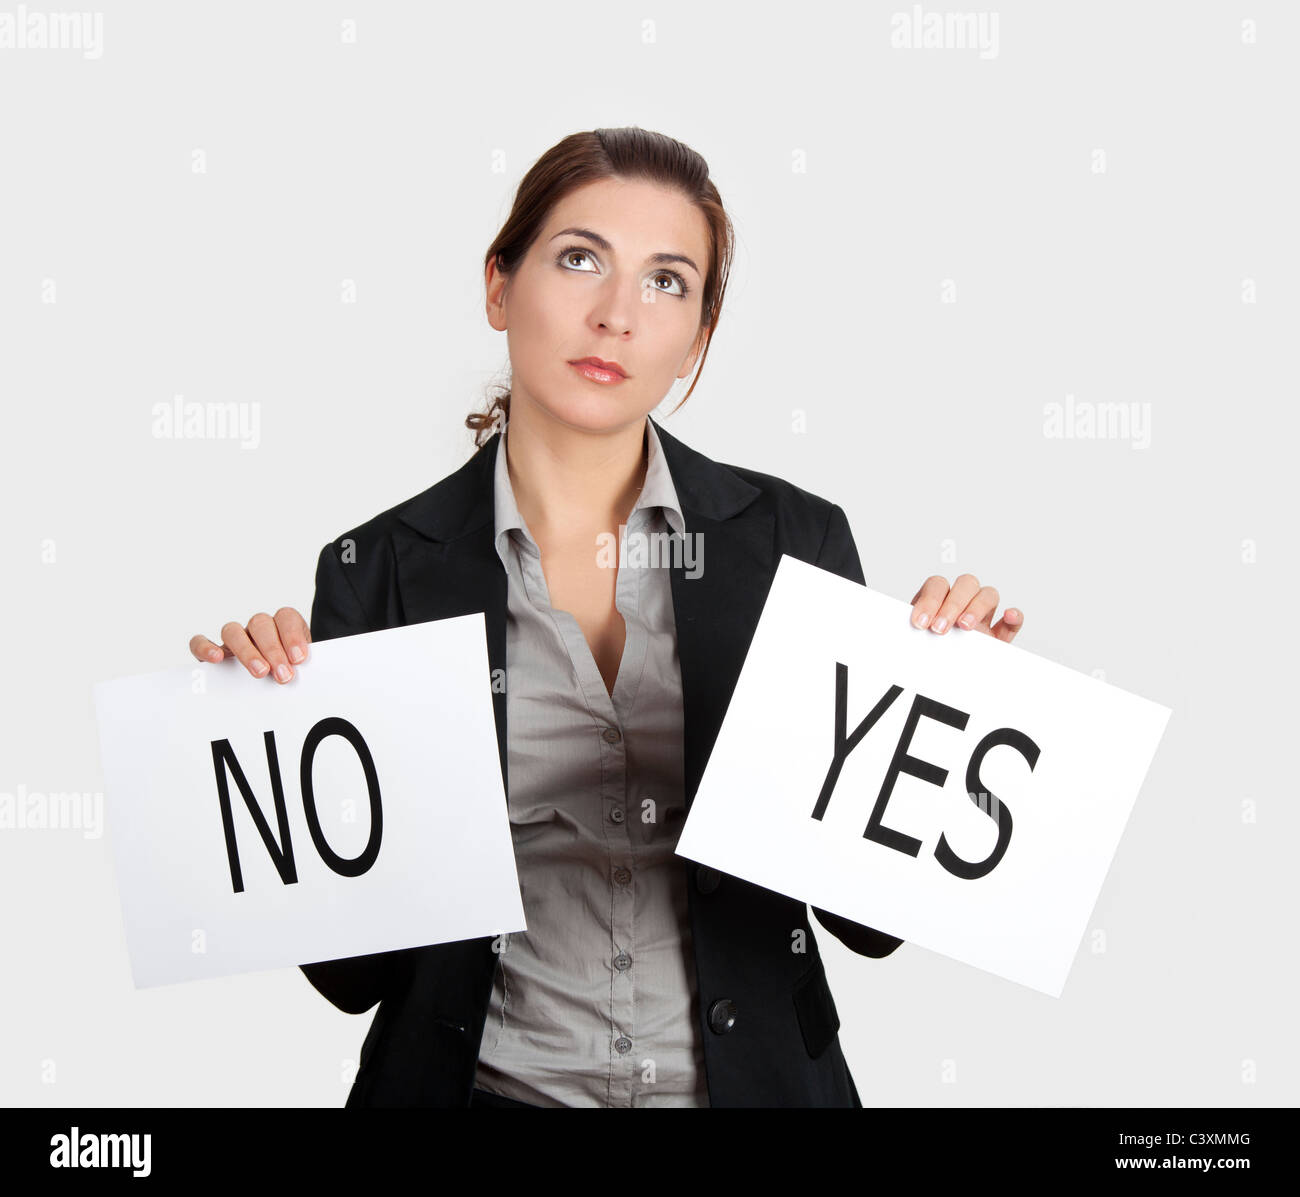 Business young woman trying to make a decision between Yes or No choice - Stock Image